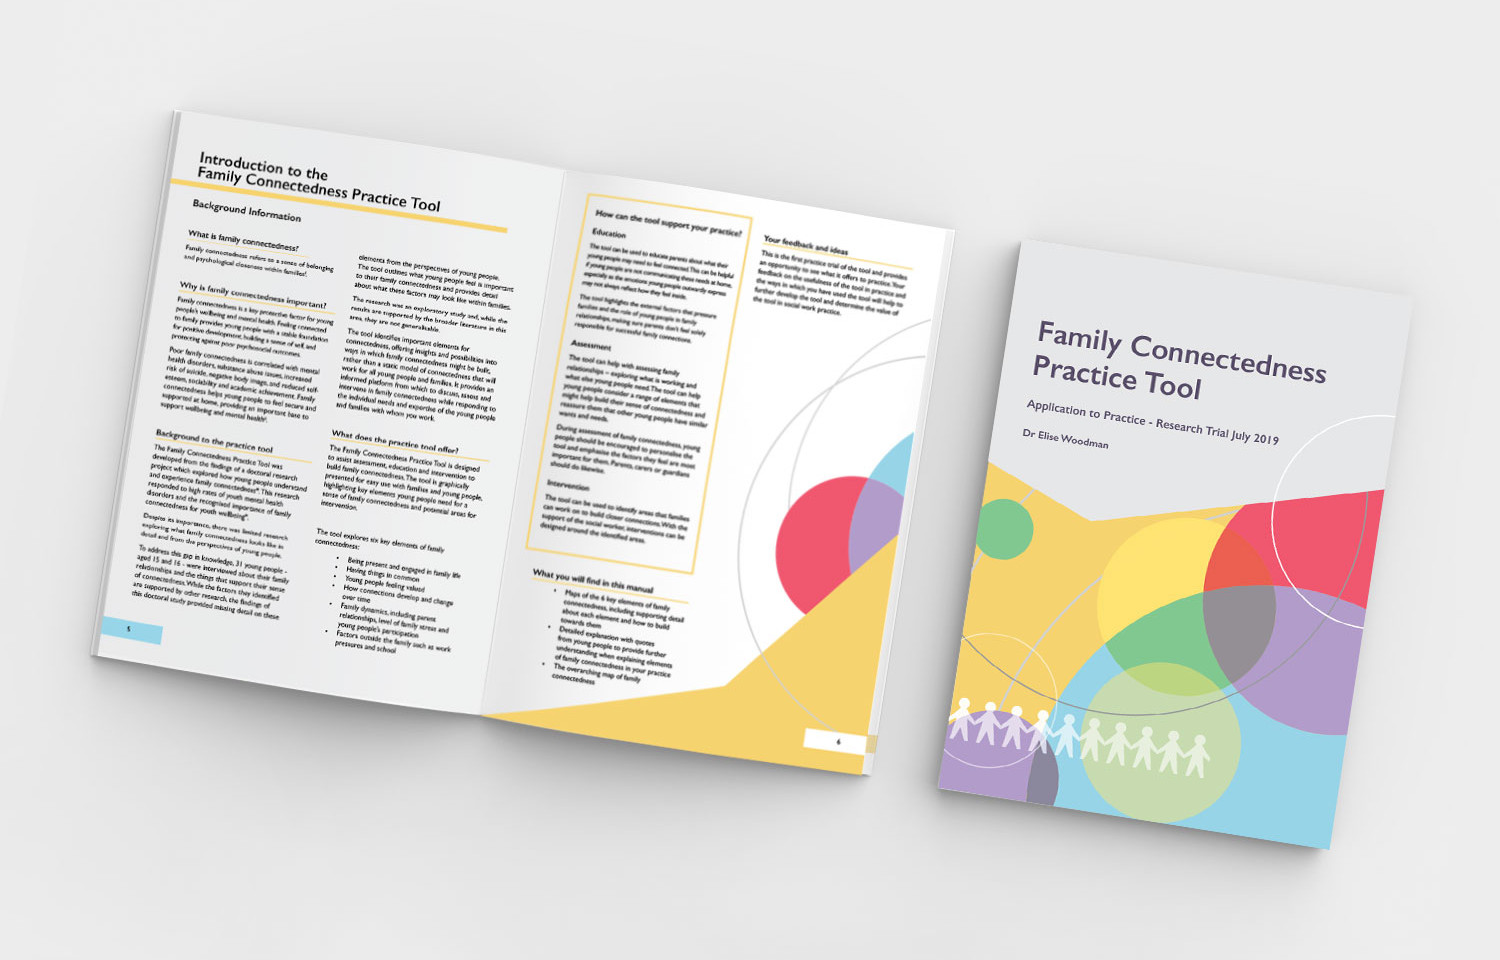 Family Connectedness Practice Tool Report